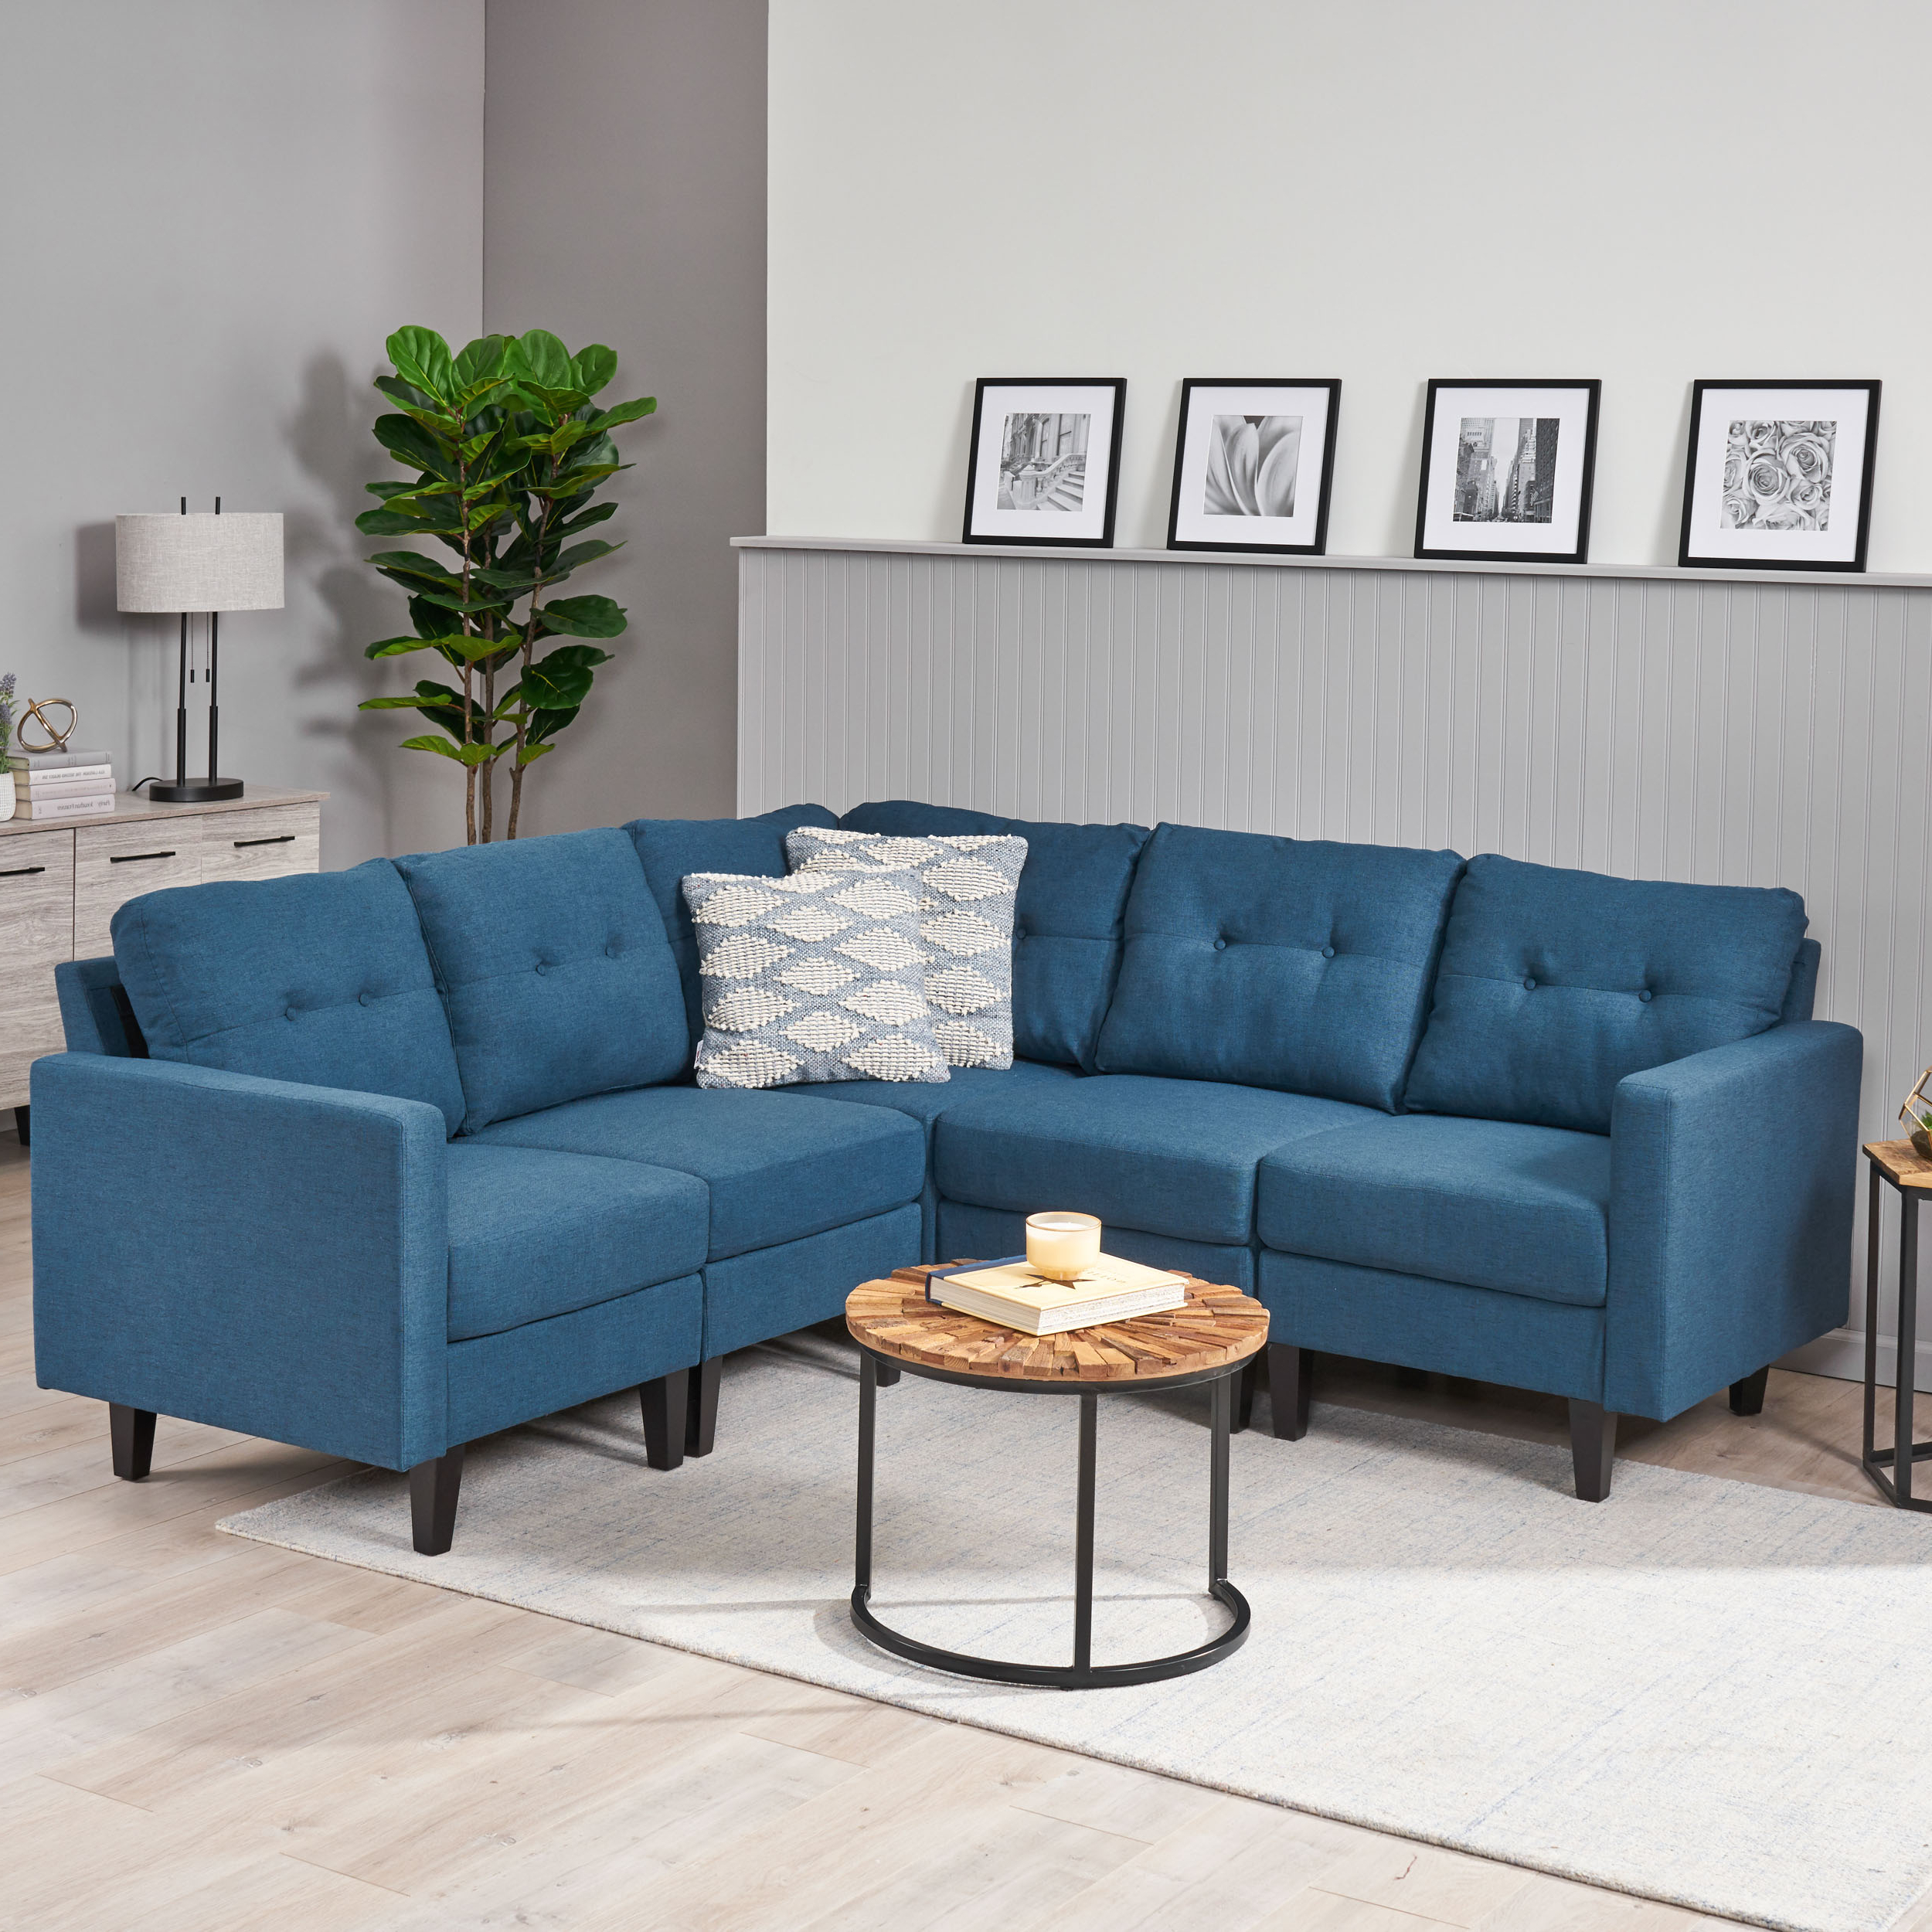 Most Popular Dulce Mid Century Chaise Sofas Dark Blue Intended For Noble House Miller Mid Century Modern 5 Piece Fabric (View 1 of 20)